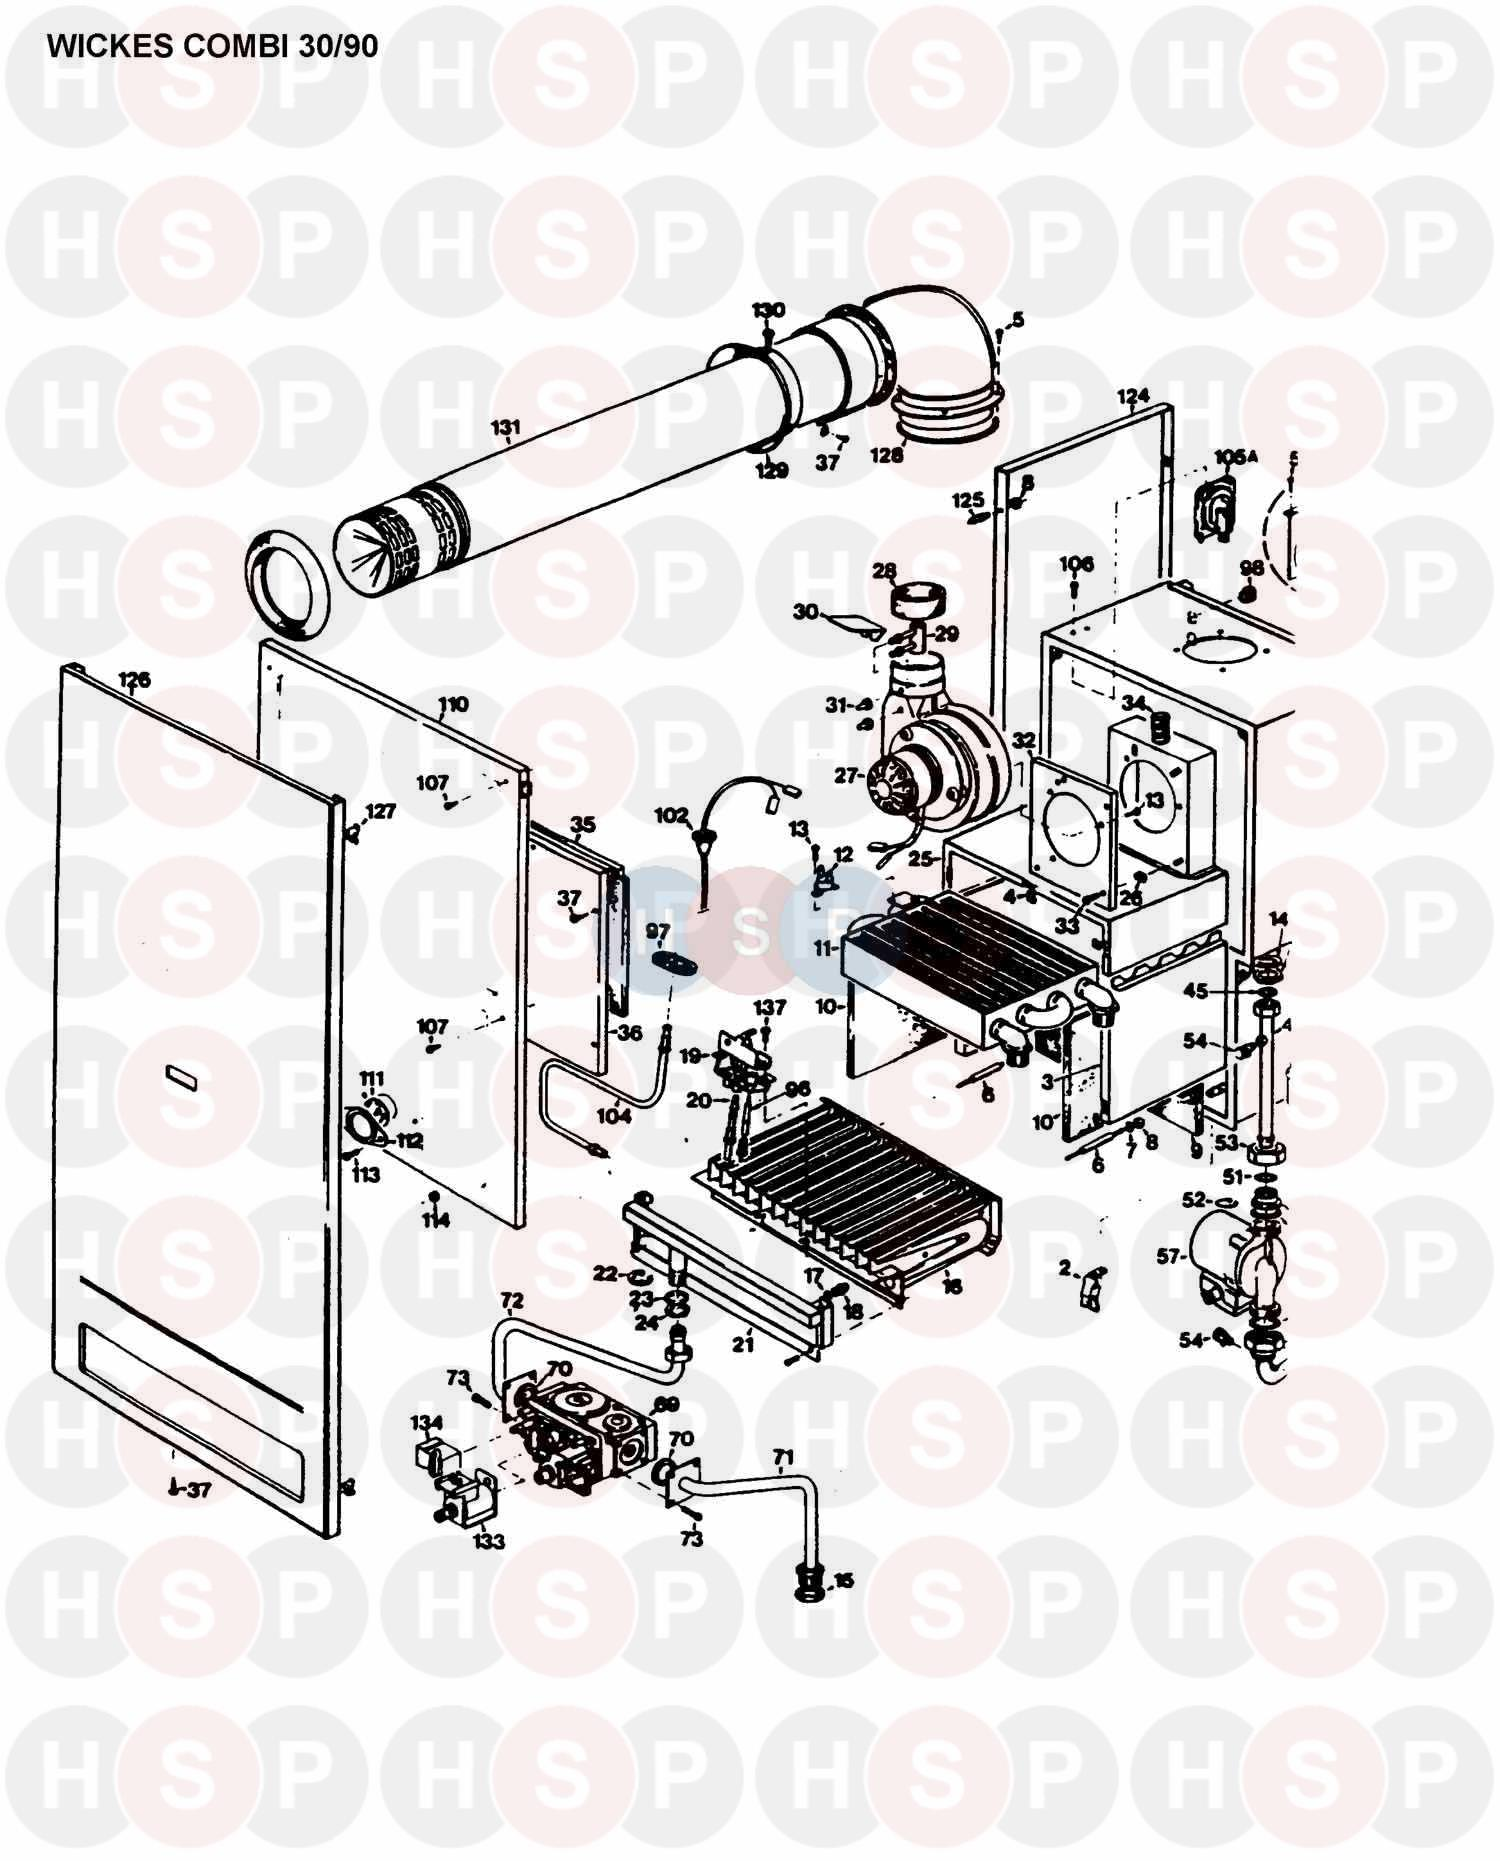 Halstead WICKES COMBI 30/90 (BOILER ASSEMBLY 1) Diagram